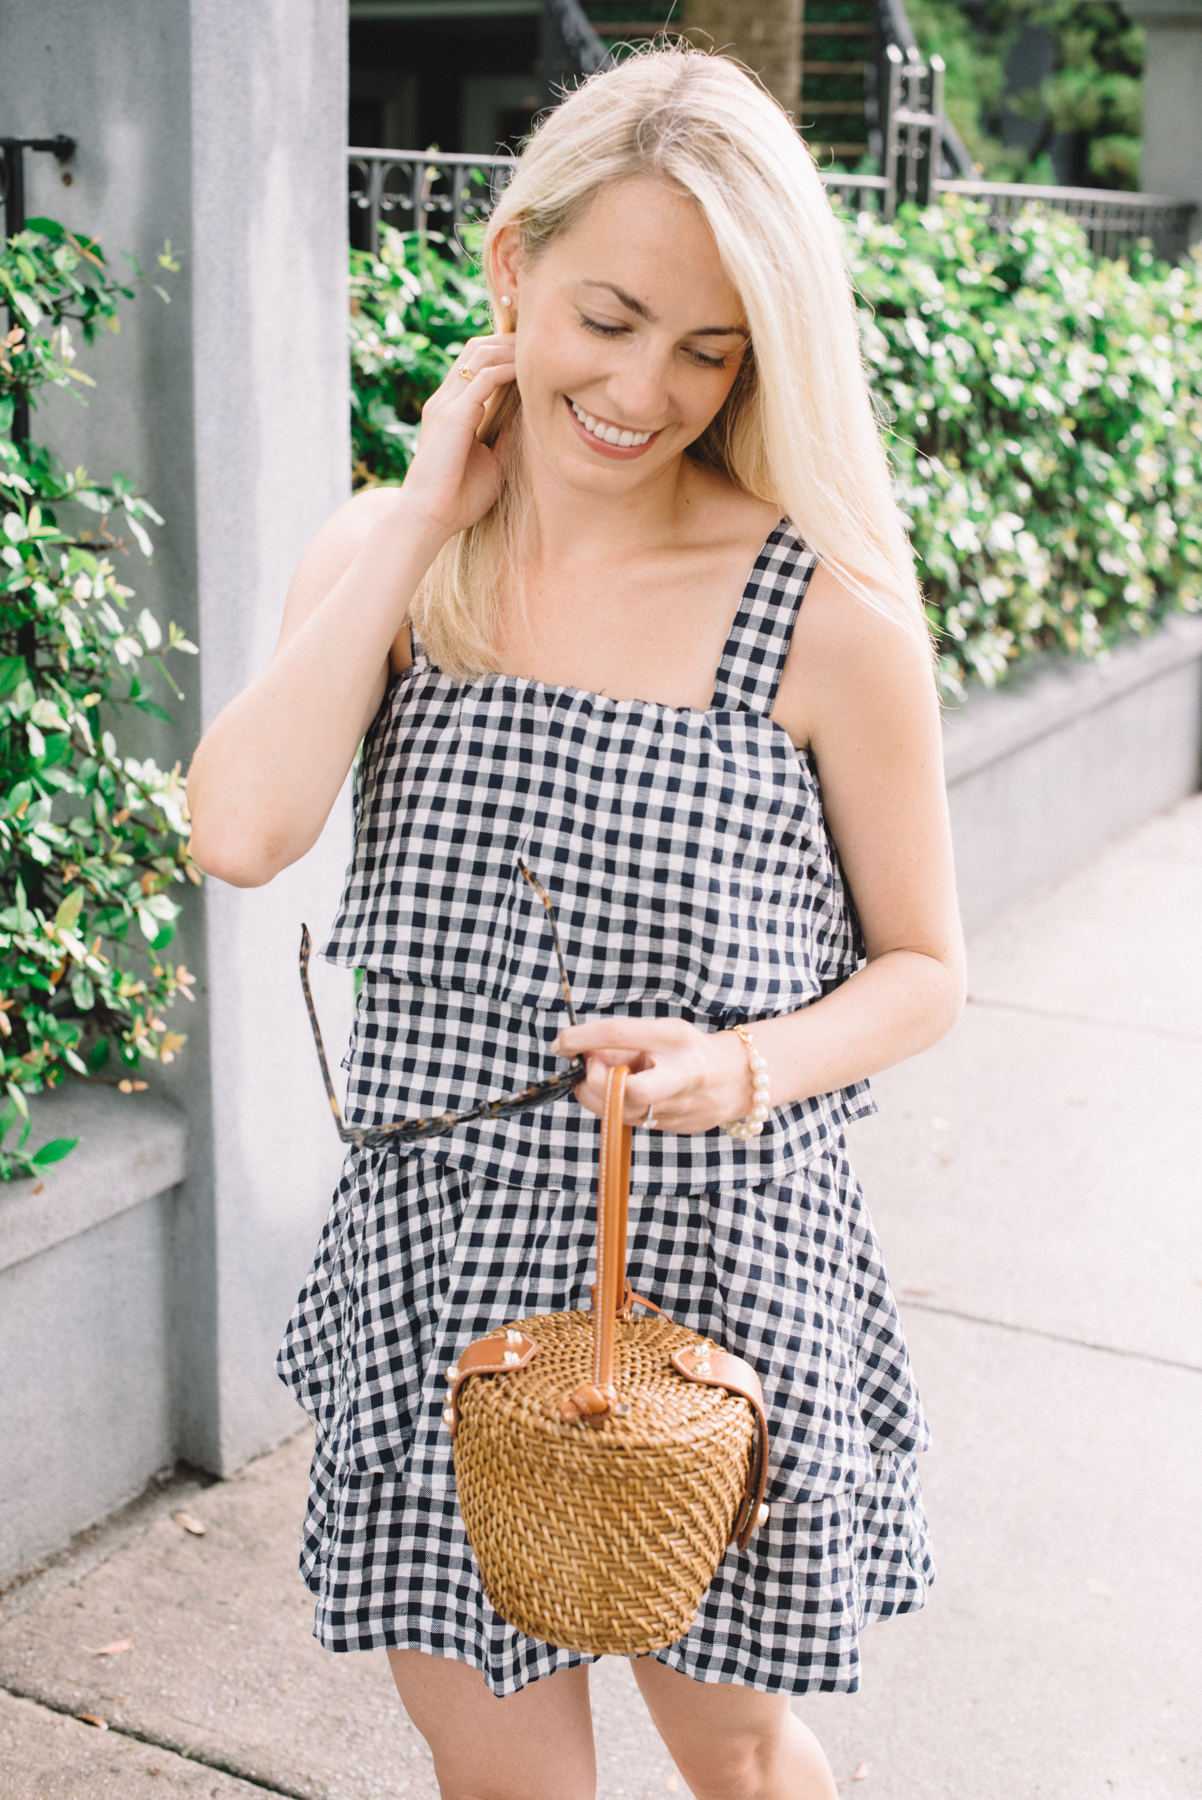 How To Wear A Gingham Dress- Neutral Gingham Prints | Rhyme & Reason